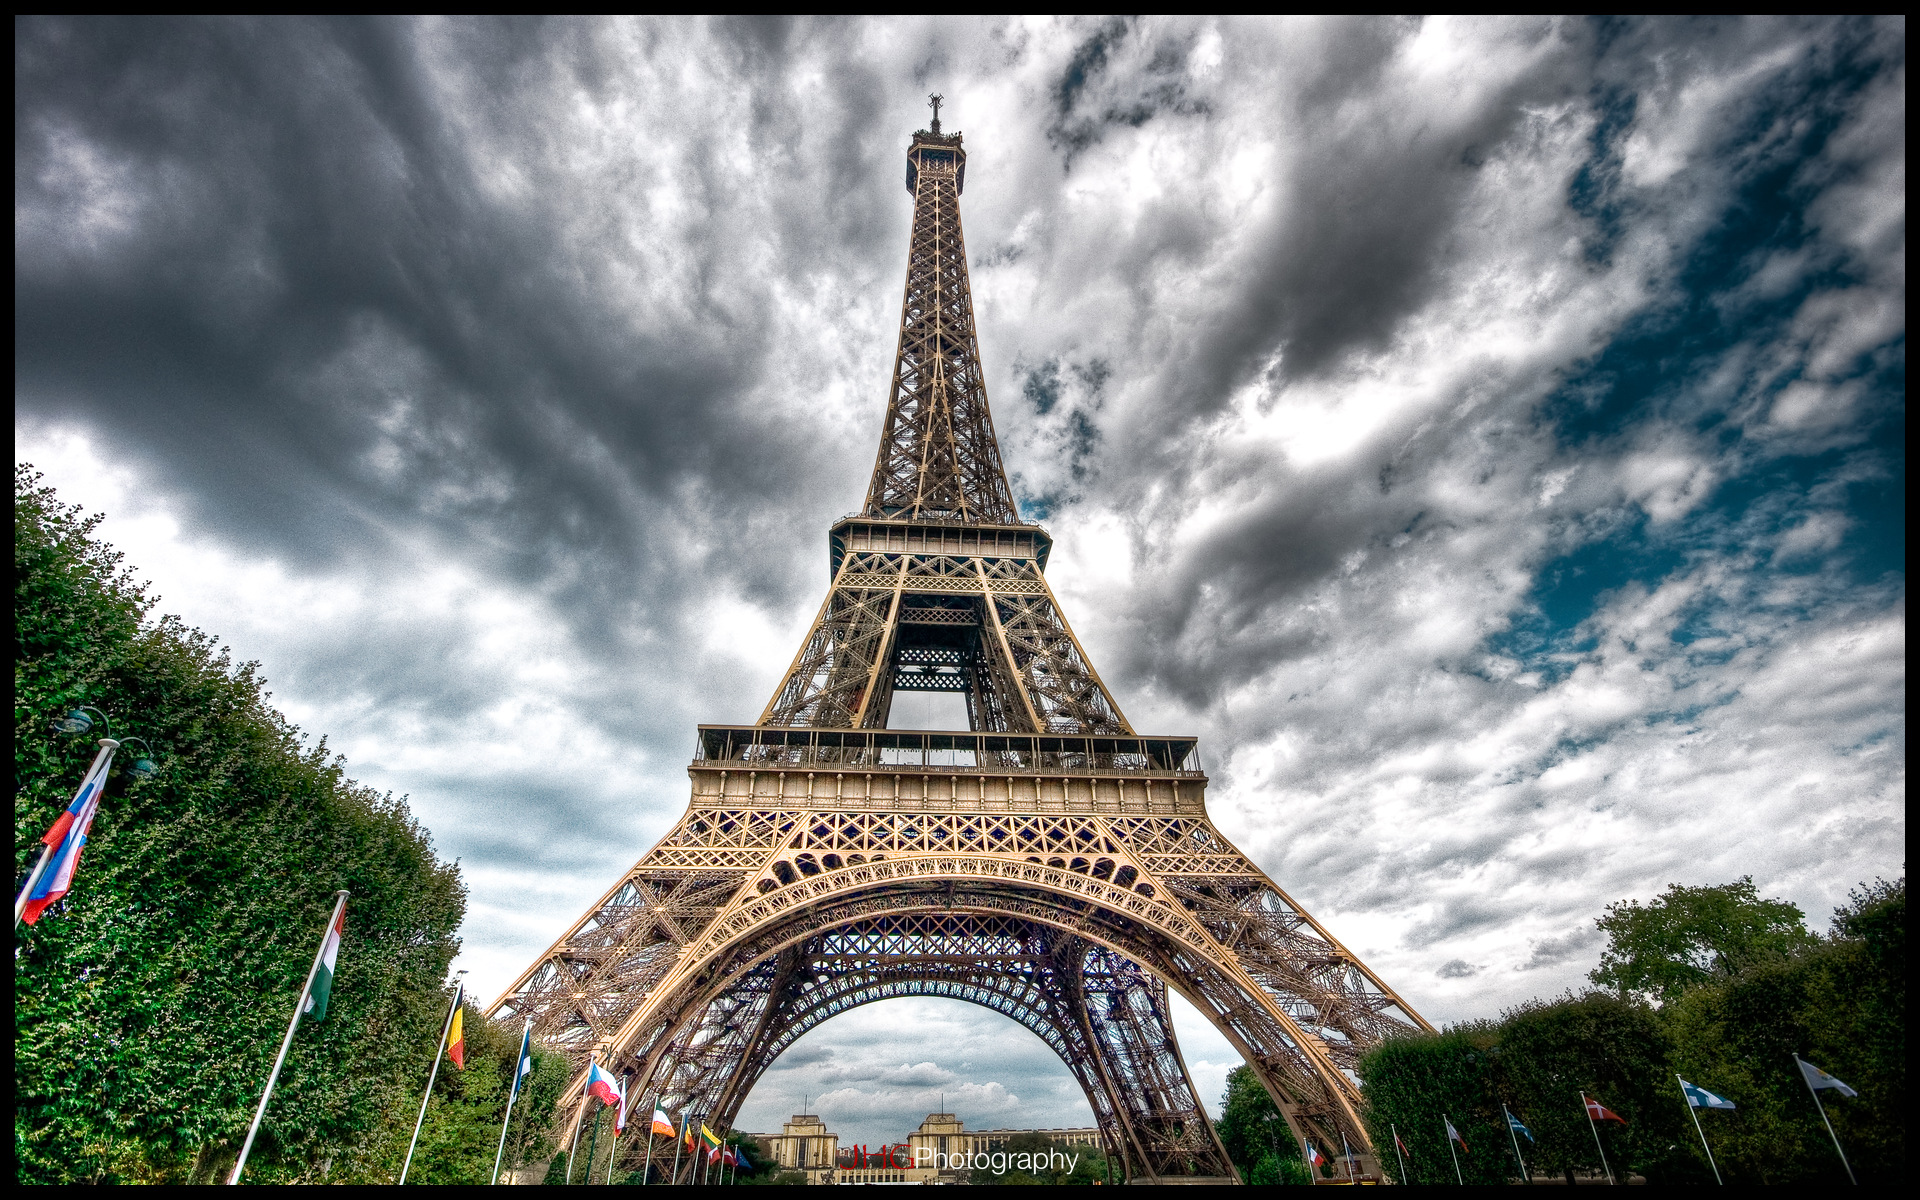 Paris wallpaper jhg photography photographe en suisse for Parigi wallpaper